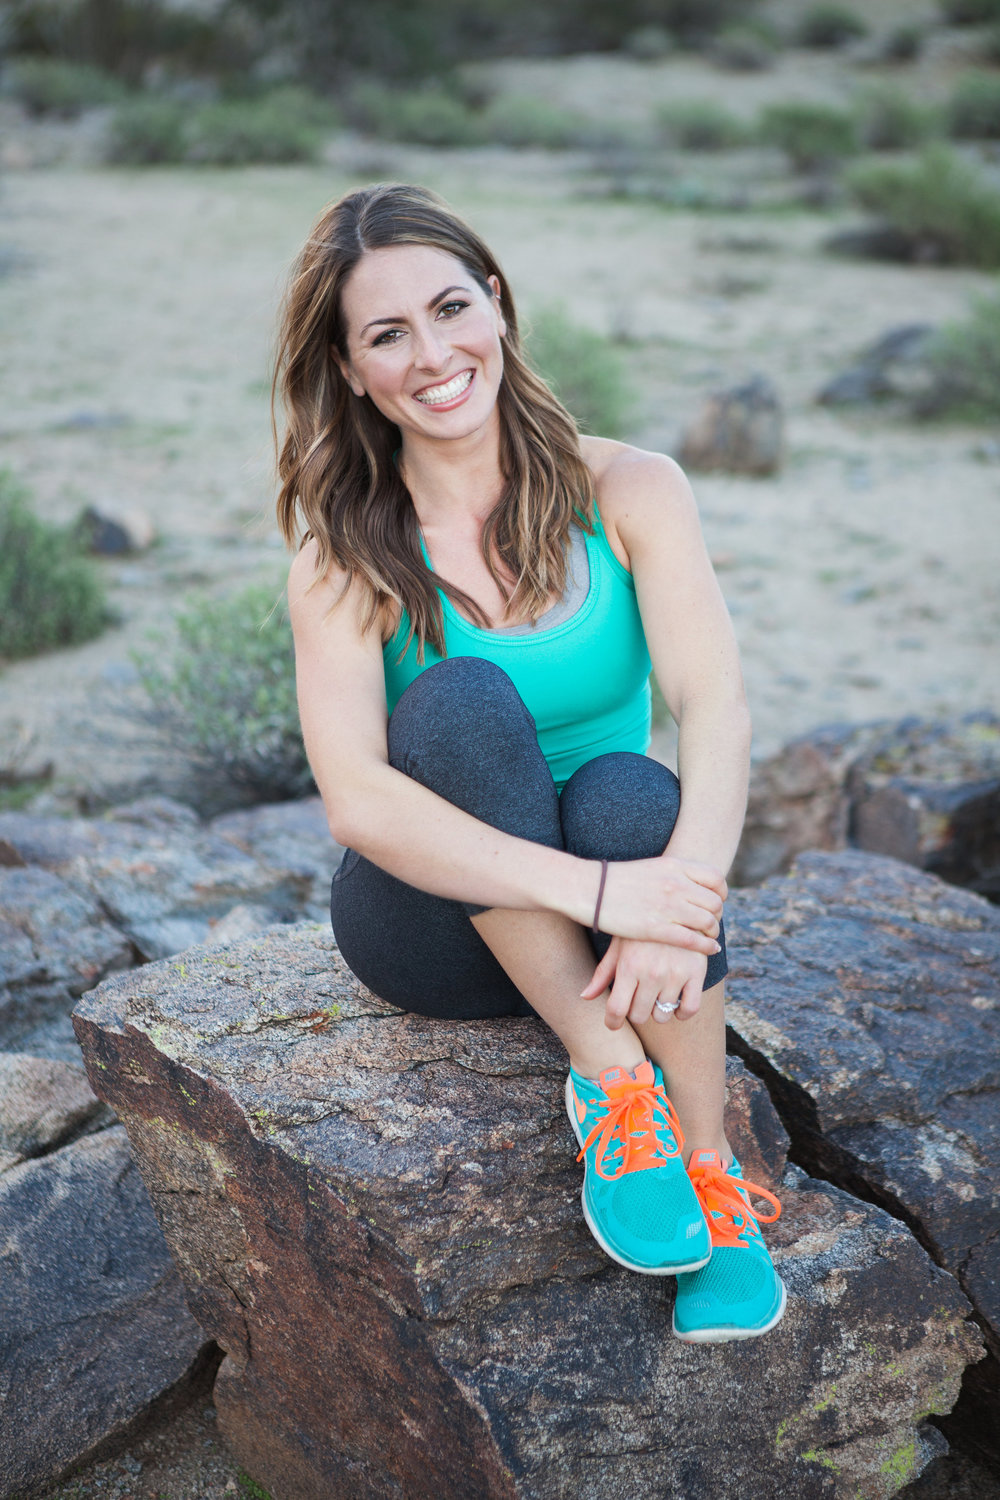 Cynthia Spenla, Fitness & Lifestyle Coach